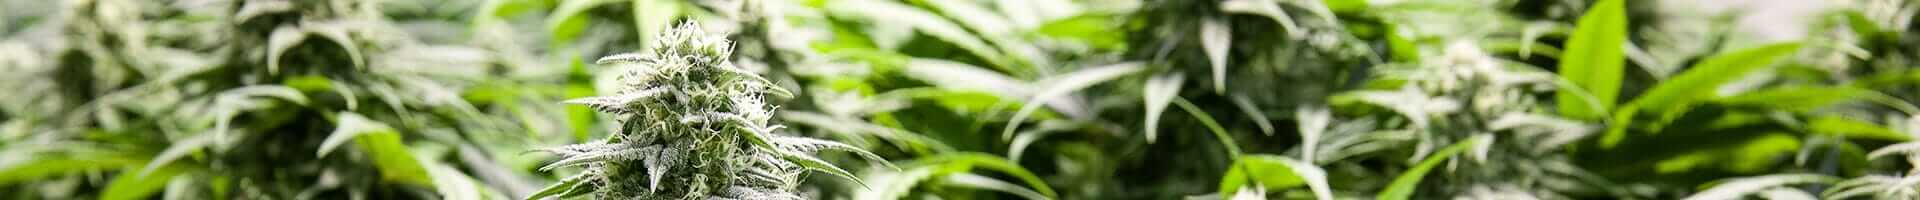 Humidity for growing weed